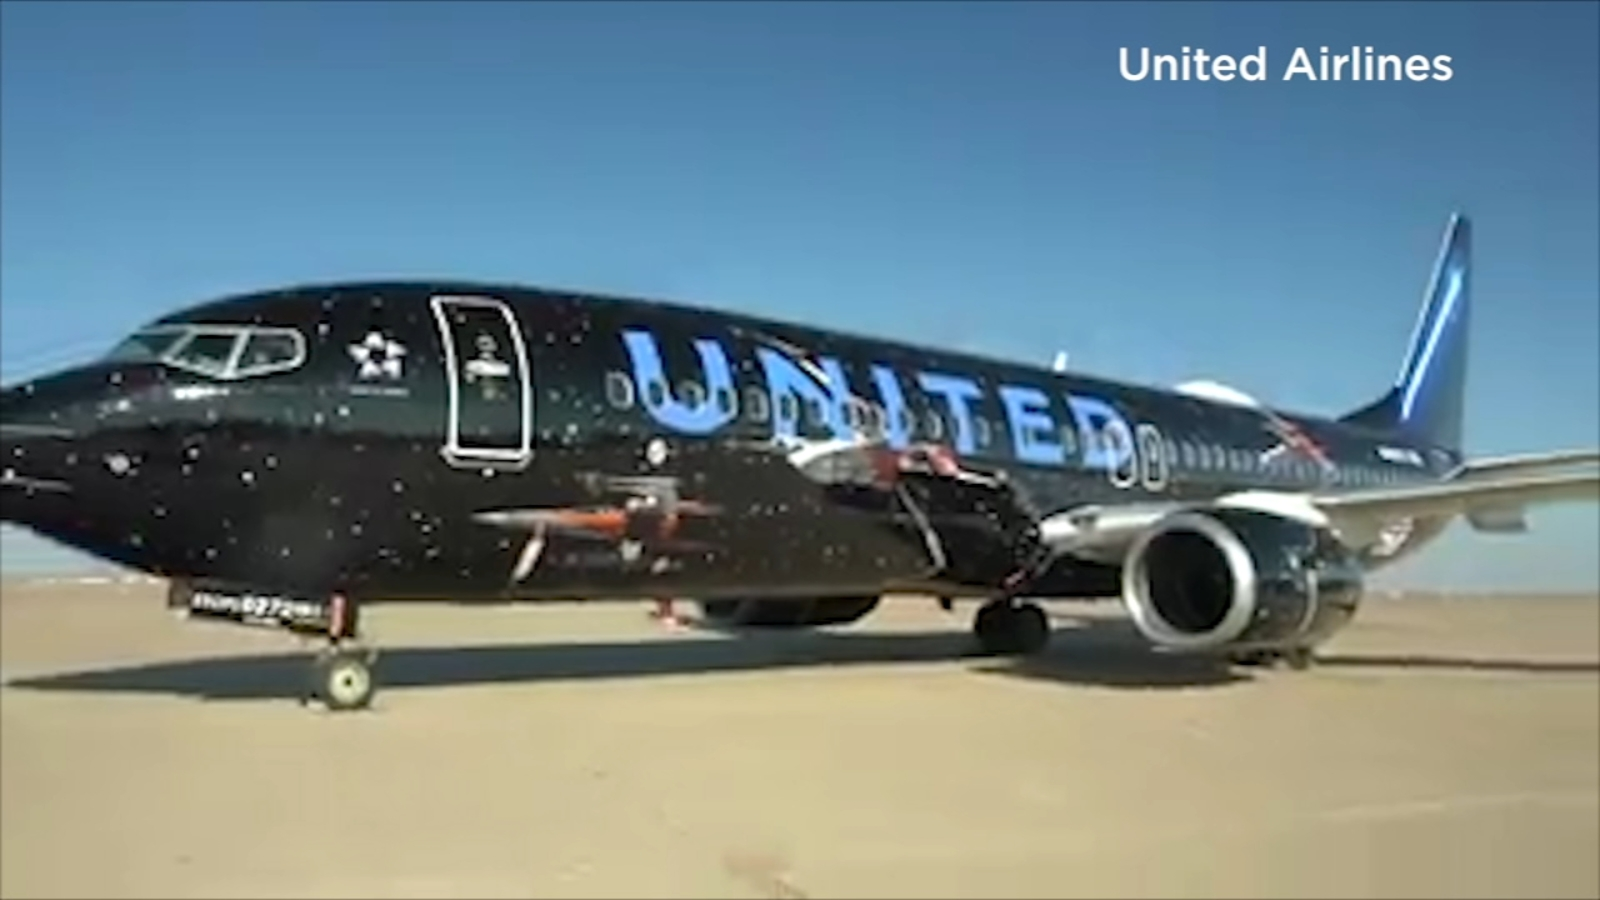 'Star Wars' themed aircraft to take its first flight out of Houston